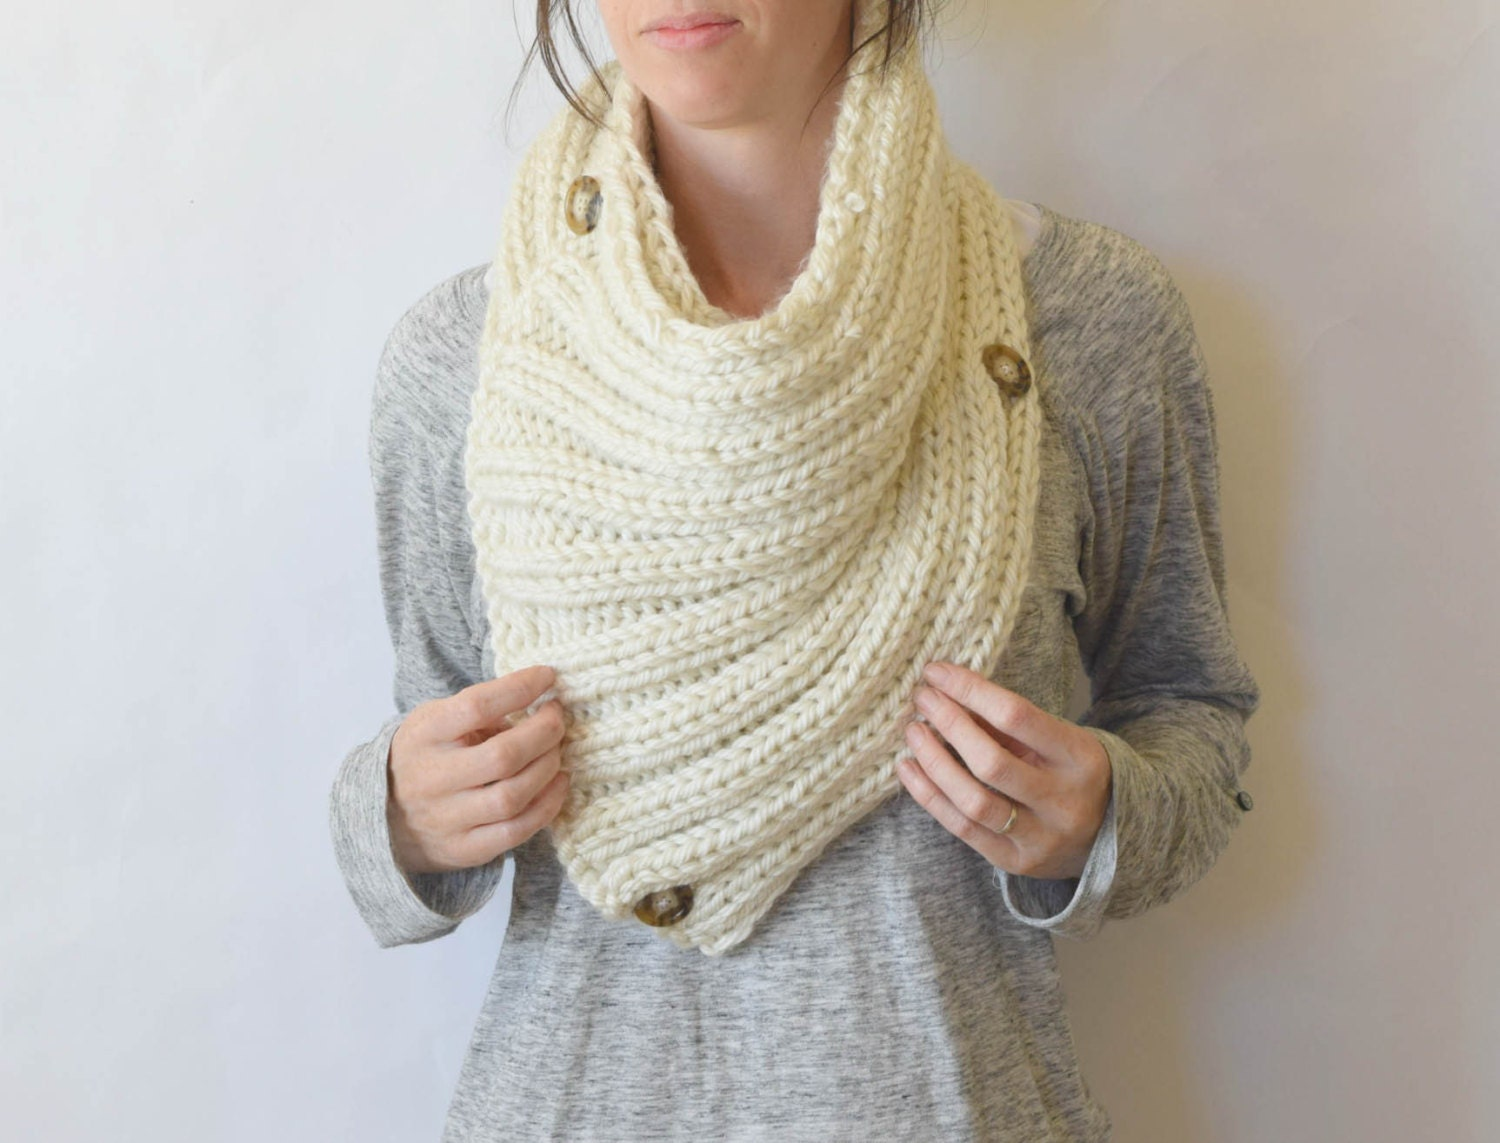 Giant Knit Cowl Big Knit Scarf Cream Knit Scar Bulky Knit Etsy